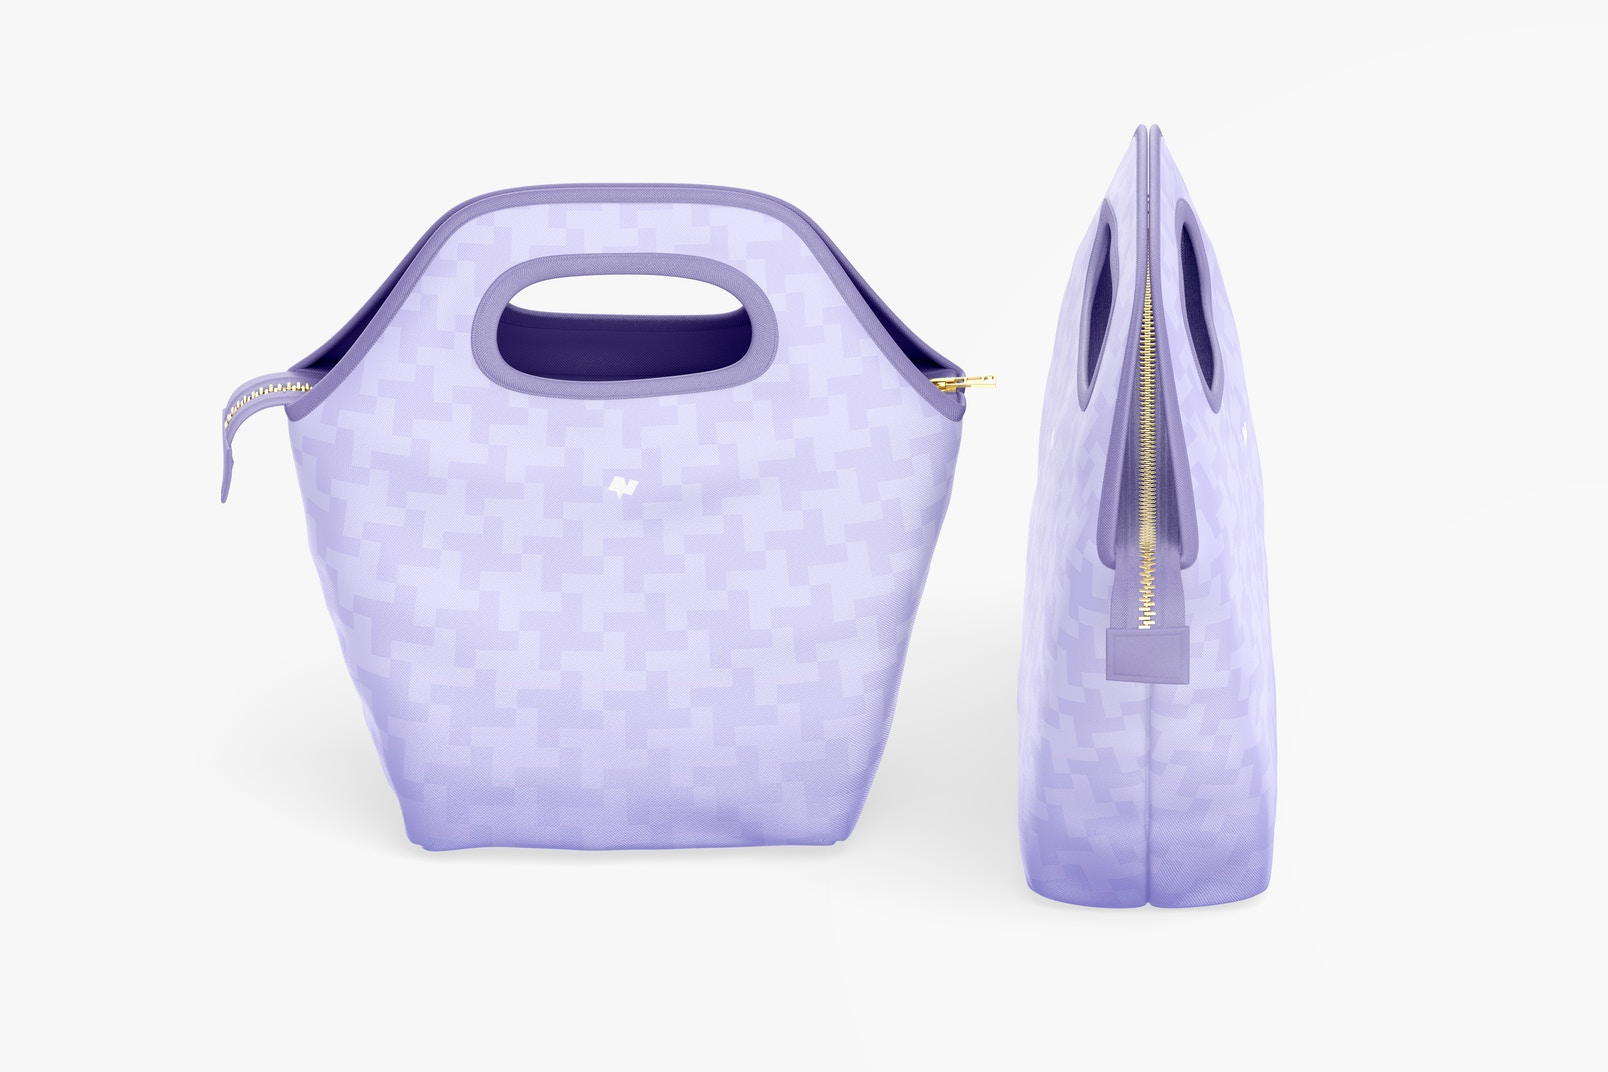 Lunch Bag Mockup, Isometric View